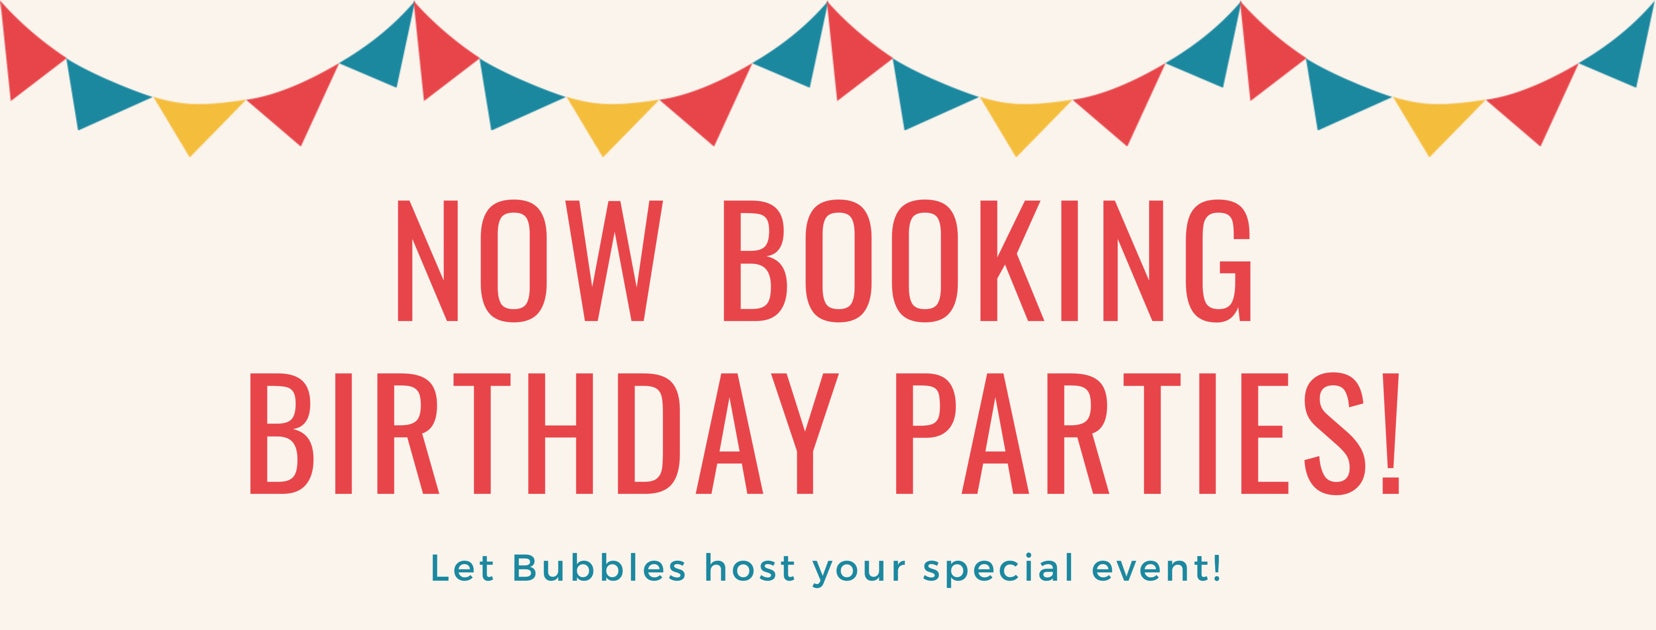 Birthday Parties at Bubbles Gift Shoppe